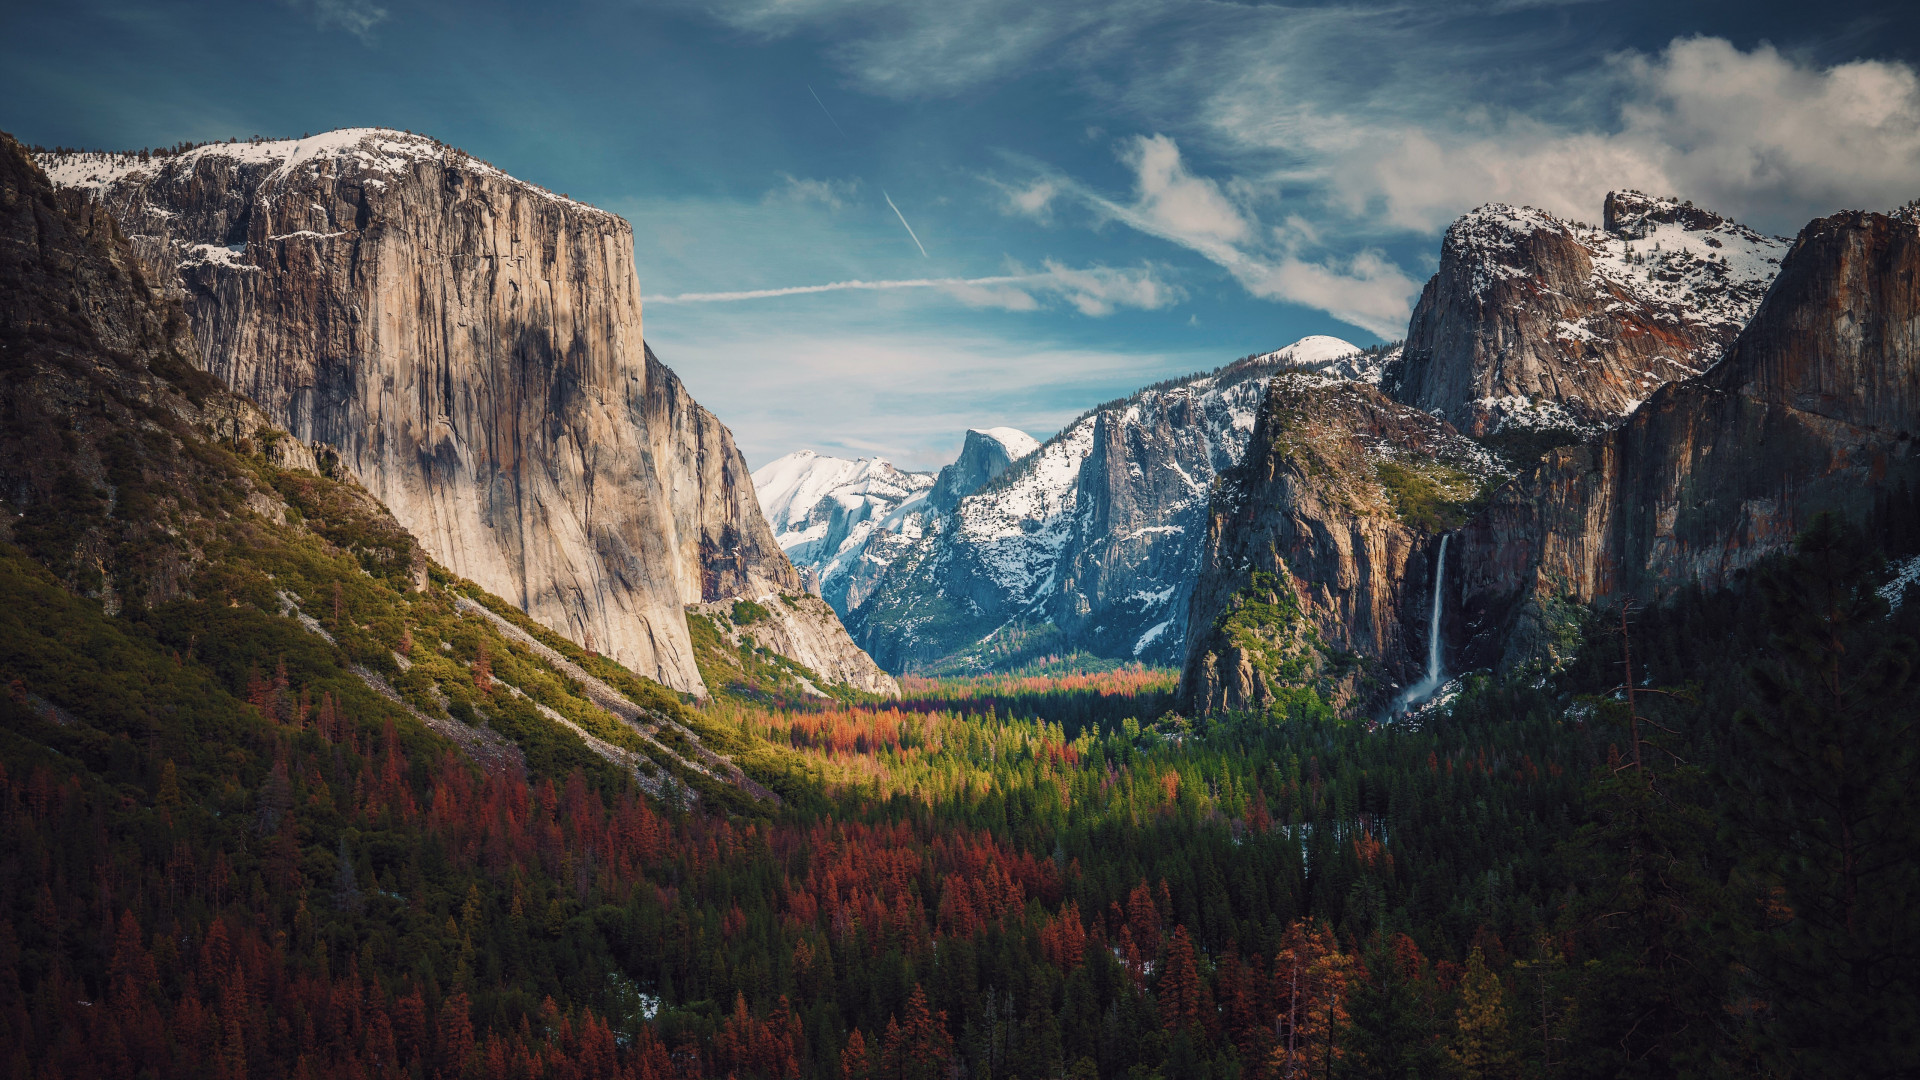 Download Wallpaper Best View From Yosemite 1920x1080